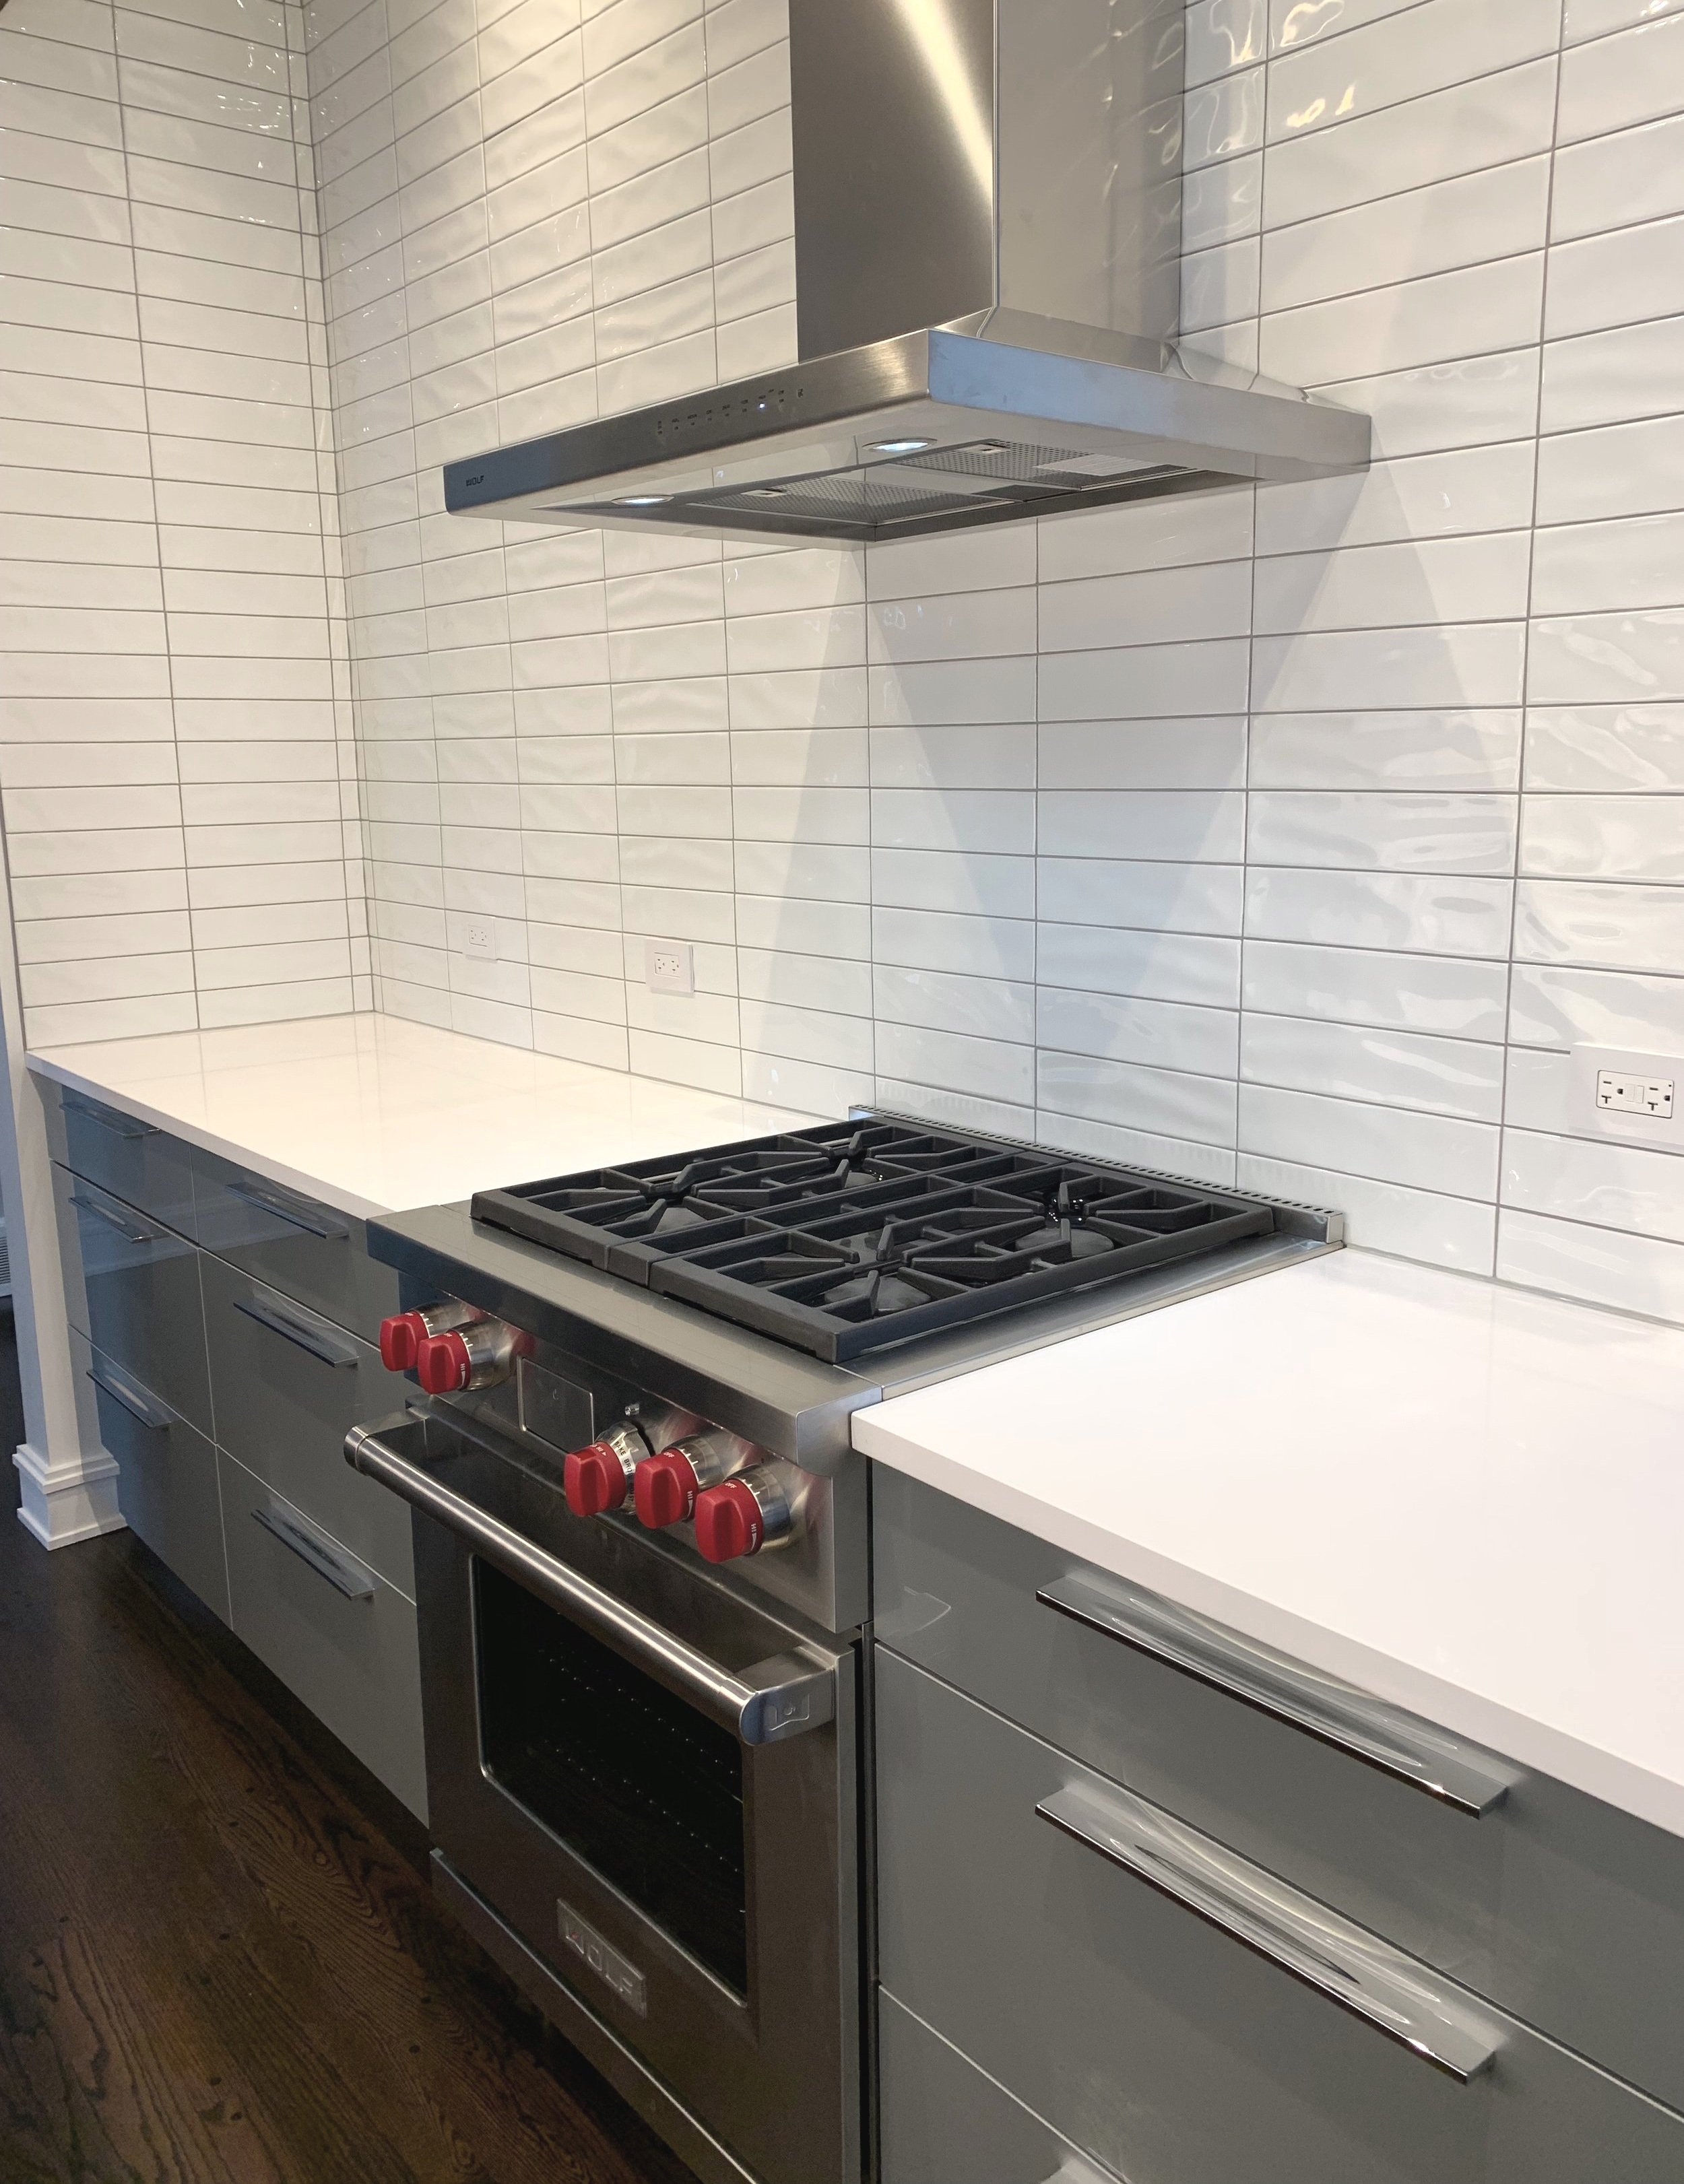 A view of the Wolf dual-fuel range and backsplash to the ceiling with undulated tile. No upper cabinets clutter the space. Generous organized storage under the counter was sufficient for these clients.